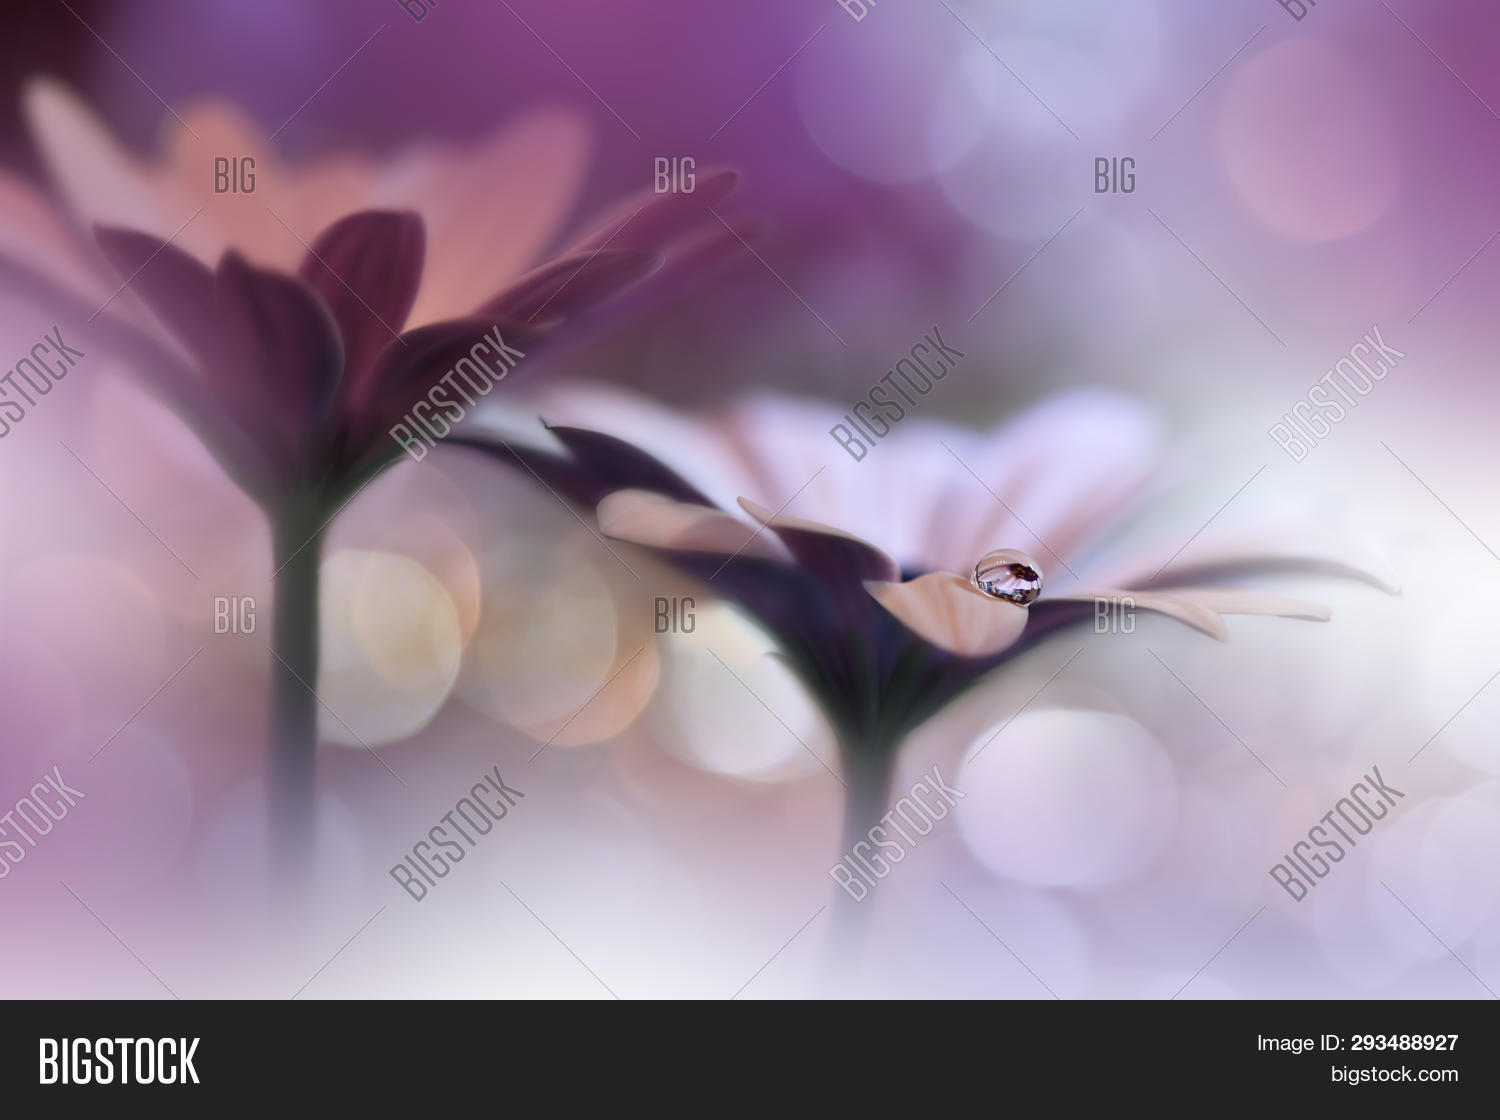 abstract,acrylic,art,artistic,artwork,background,bloom,blossom,blur,brush,canvas,closeup,color,colorful,decoration,decorative,design,drawing,drop,flora,floral,flower,gerbera,green,greeting,handmade,life,macro,modern,nature,oil,orange,paint,paintbrush,painting,pastel,petal,photography,plant,spring,still,stroke,style,summer,texture,vibrant,wallpaper,white,yellow